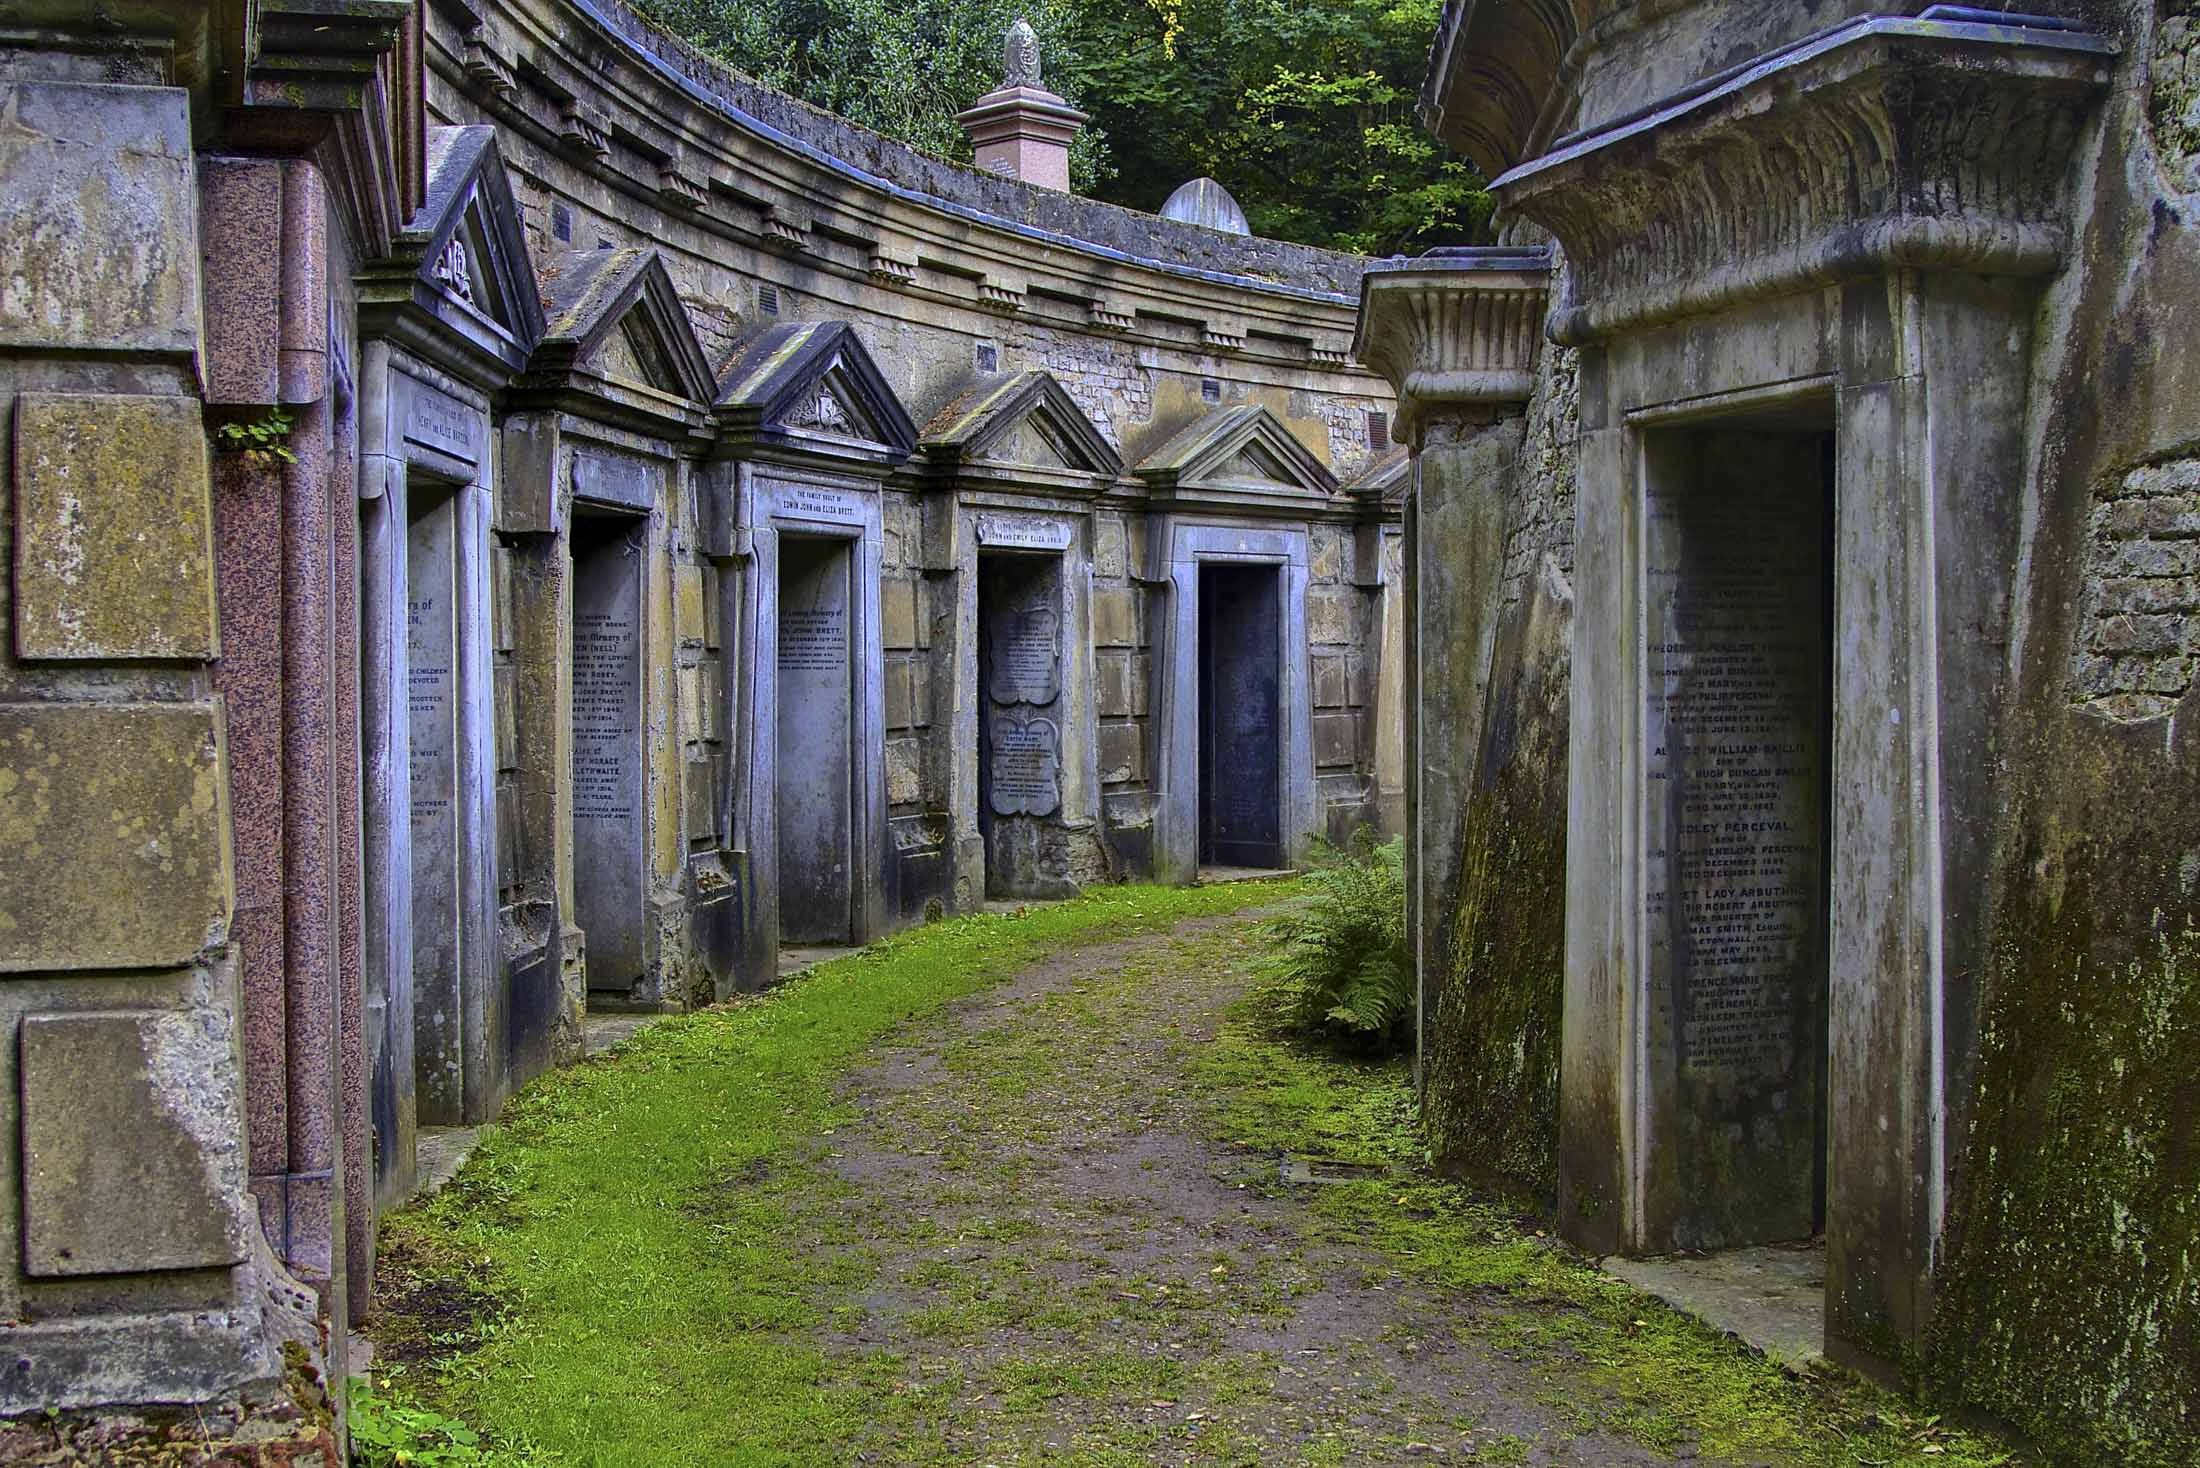 These Are The 12 Most Beautiful Cemeteries In The World